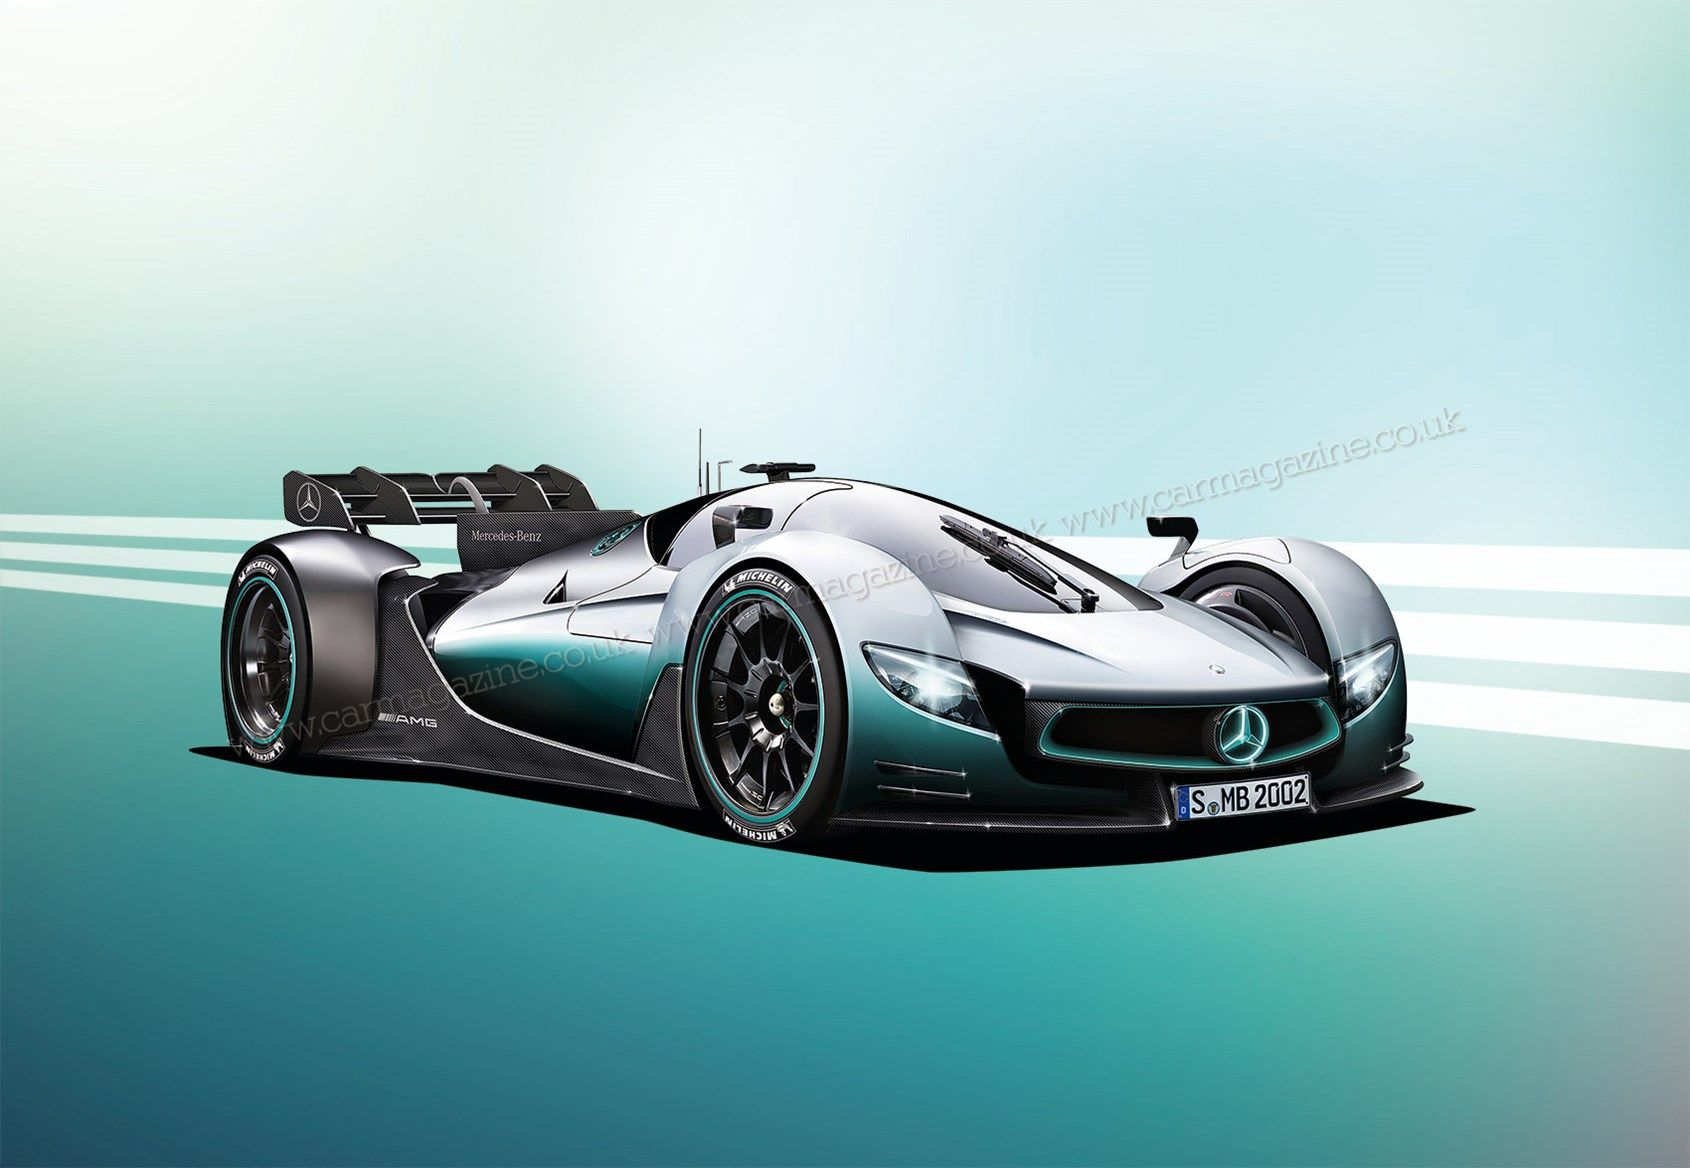 Mercedes Amg Confirms A Hybrid Hypercar At The Paris Motor